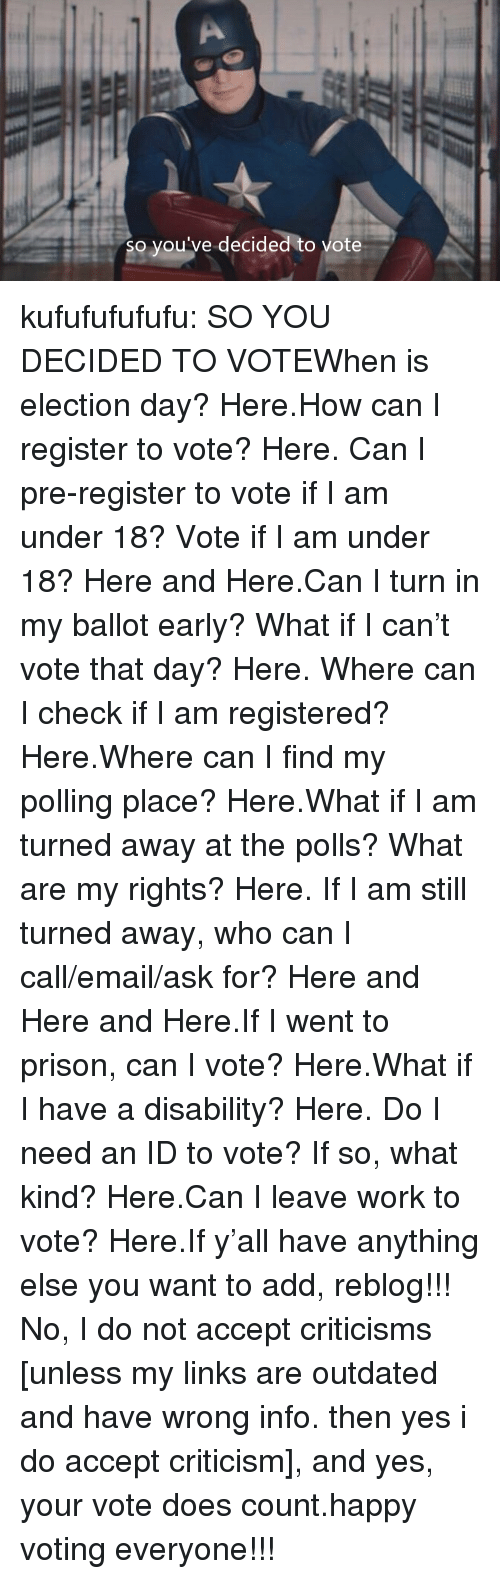 Tumblr, Twitter, and Work: so you've decided to vote kufufufufufu:  SO YOU DECIDED TO VOTEWhen is election day? Here.How can I register to vote? Here.Can I pre-register to vote if I am under 18? Vote if I am under 18? Here and Here.Can I turn in my ballot early? What if I can't vote that day? Here.Where can I check if I am registered? Here.Where can I find my polling place? Here.What if I am turned away at the polls? What are my rights? Here.If I am still turned away, who can I call/email/ask for? Here and Here and Here.If I went to prison, can I vote? Here.What if I have a disability? Here.Do I need an ID to vote? If so, what kind? Here.Can I leave work to vote? Here.If y'all have anything else you want to add, reblog!!! No, I do not accept criticisms [unless my links are outdated and have wrong info. then yes i do accept criticism], and yes, your vote does count.happy voting everyone!!!